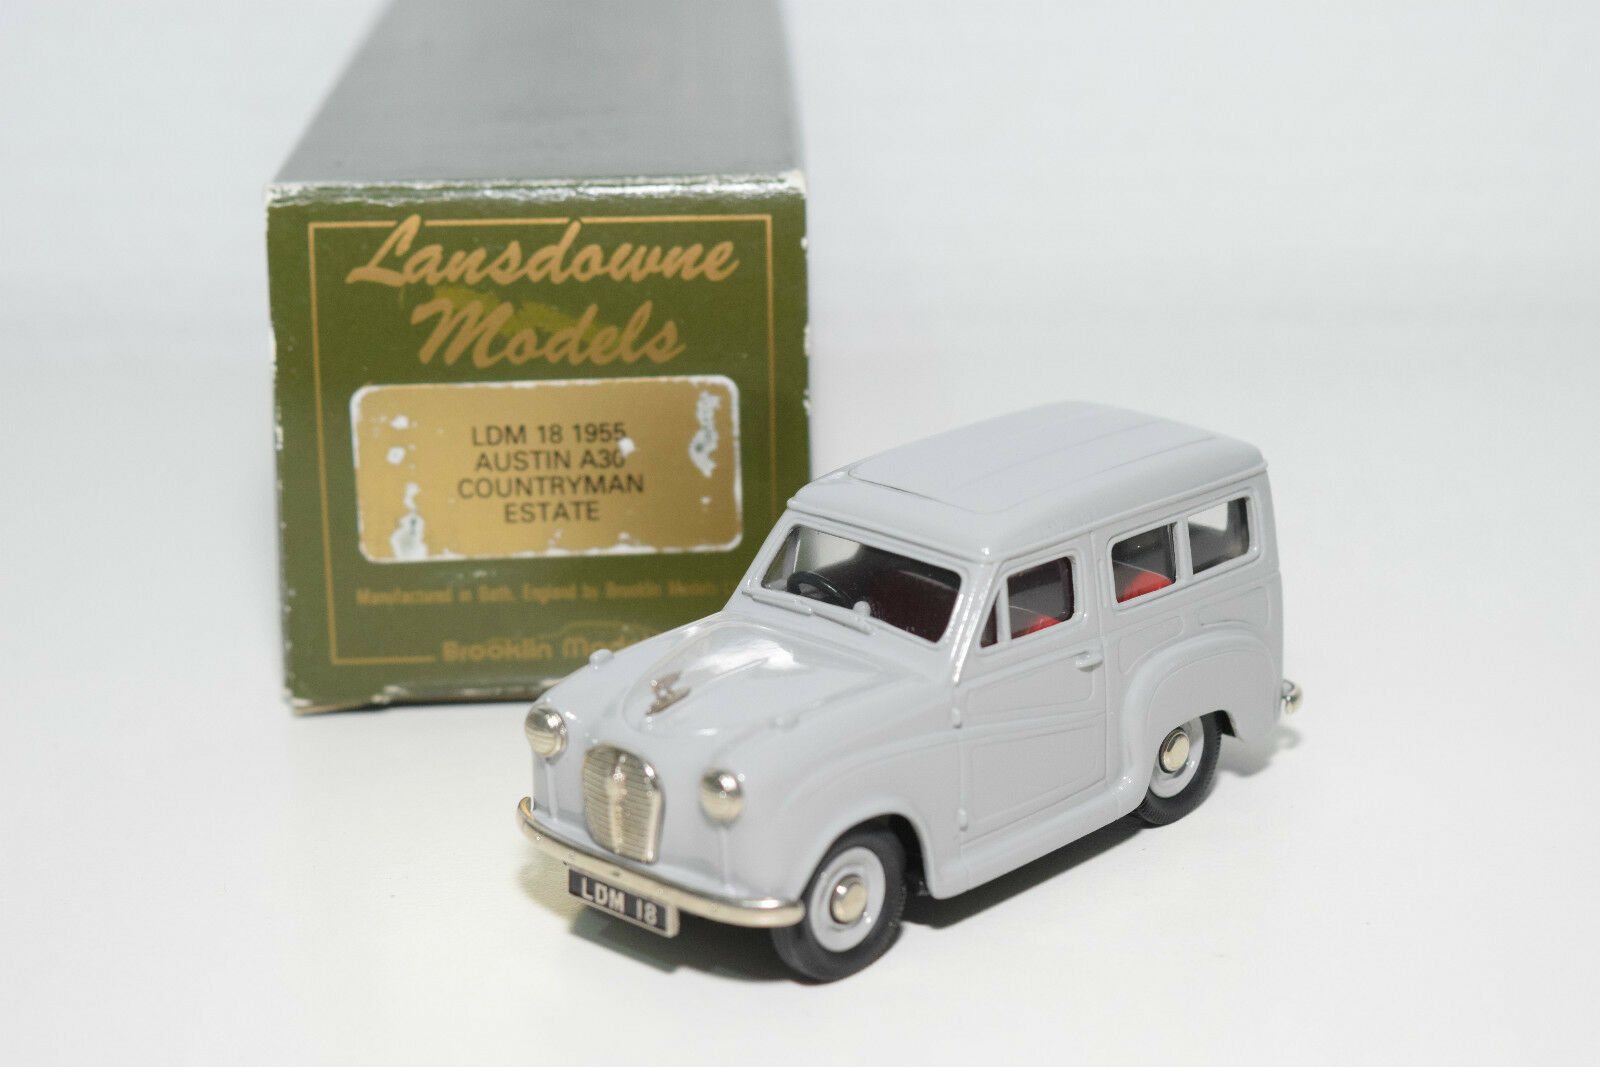 . LANSDOWNE MODELS LDM 18 AUSTIN A30 COUNTRYMAN ESTATE 1955 GREY MINT BOXED